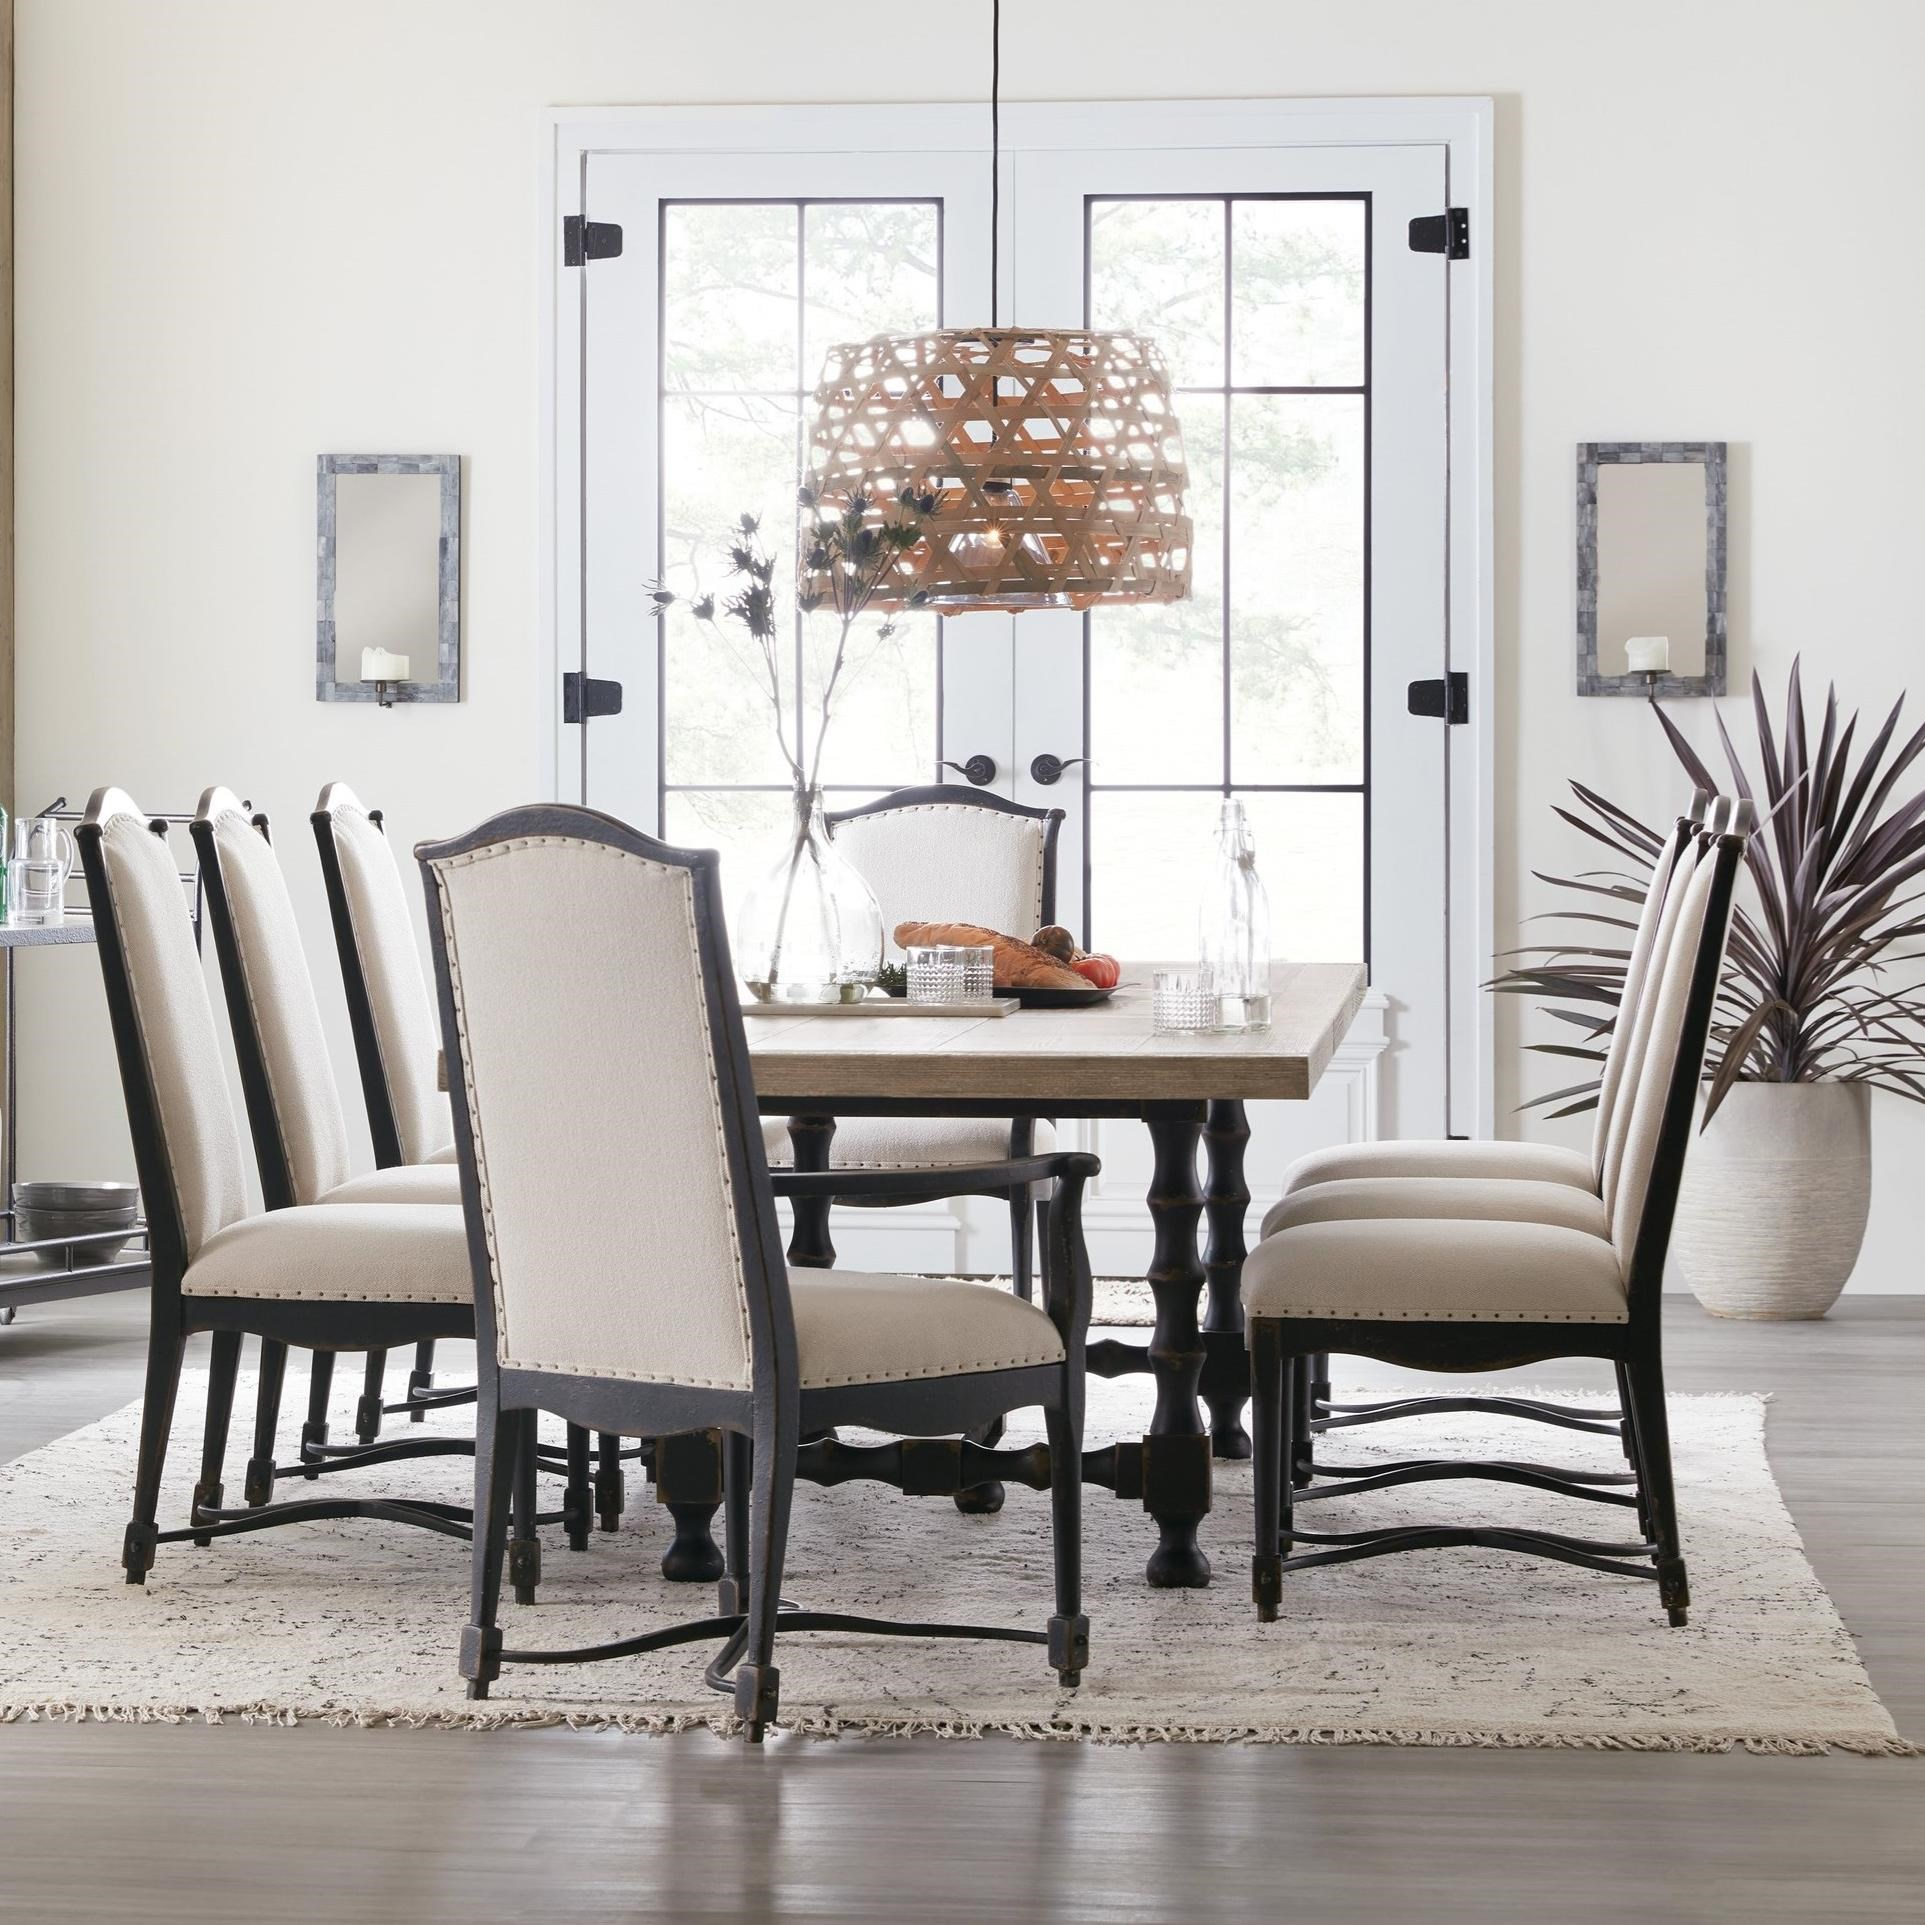 Ciao Bella 9-Piece Table and Chair Set by Hooker Furniture at Baer's Furniture